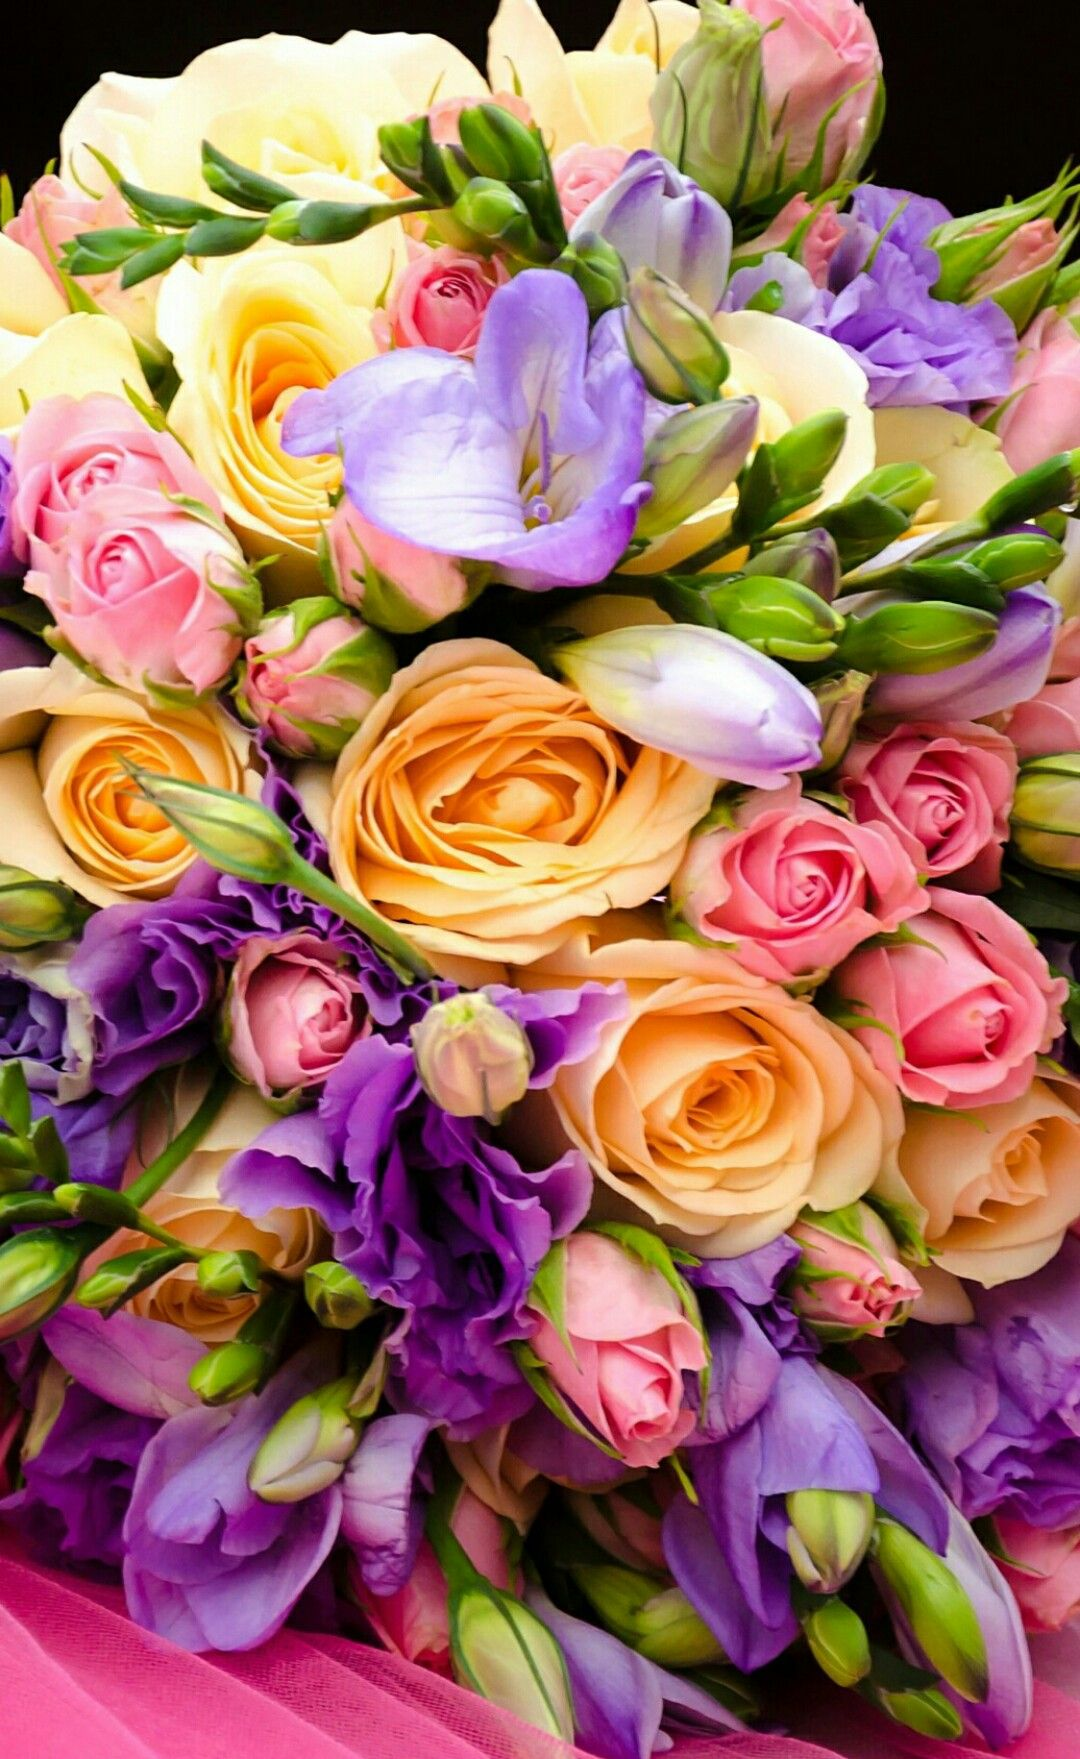 Gorgeous flowers | All the things that i Love | Pinterest | Flowers ...